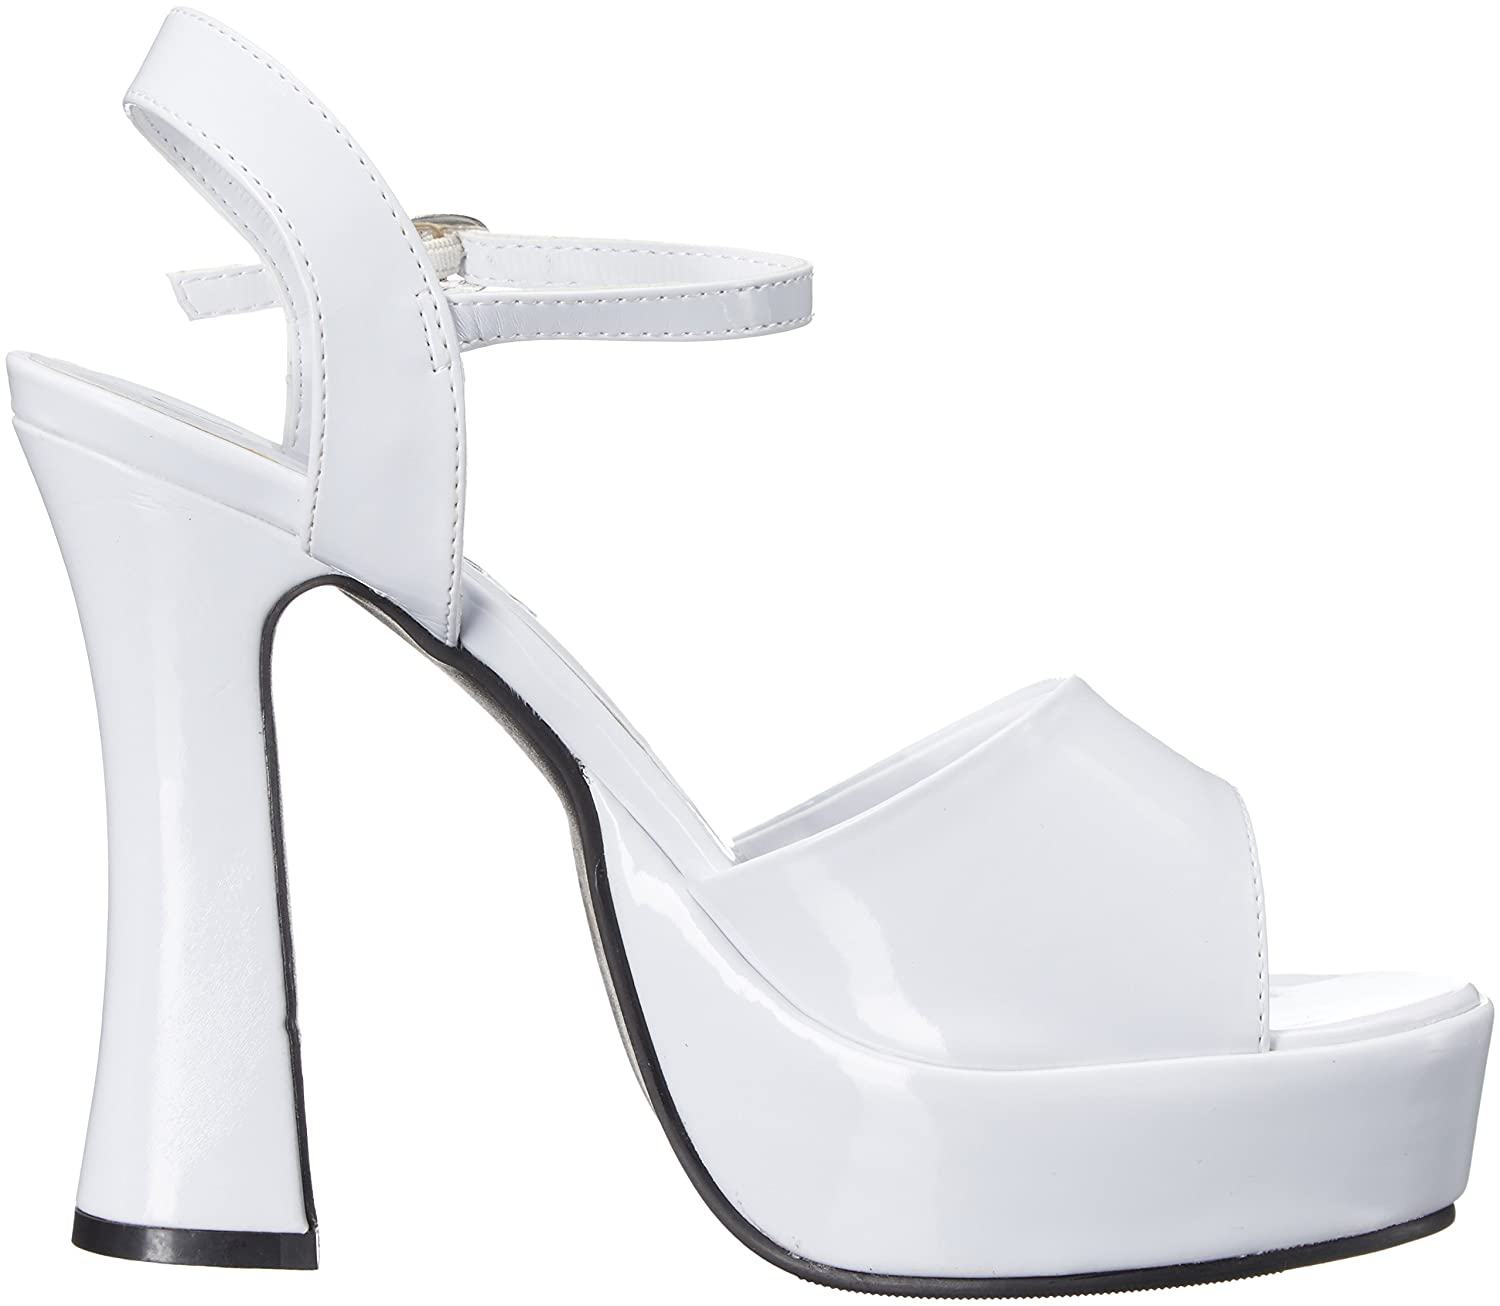 Ellie Shoes Women's 557-Betty B(M) Heeled Sandal B002OAO85M 11 B(M) 557-Betty US|White 0c7a14